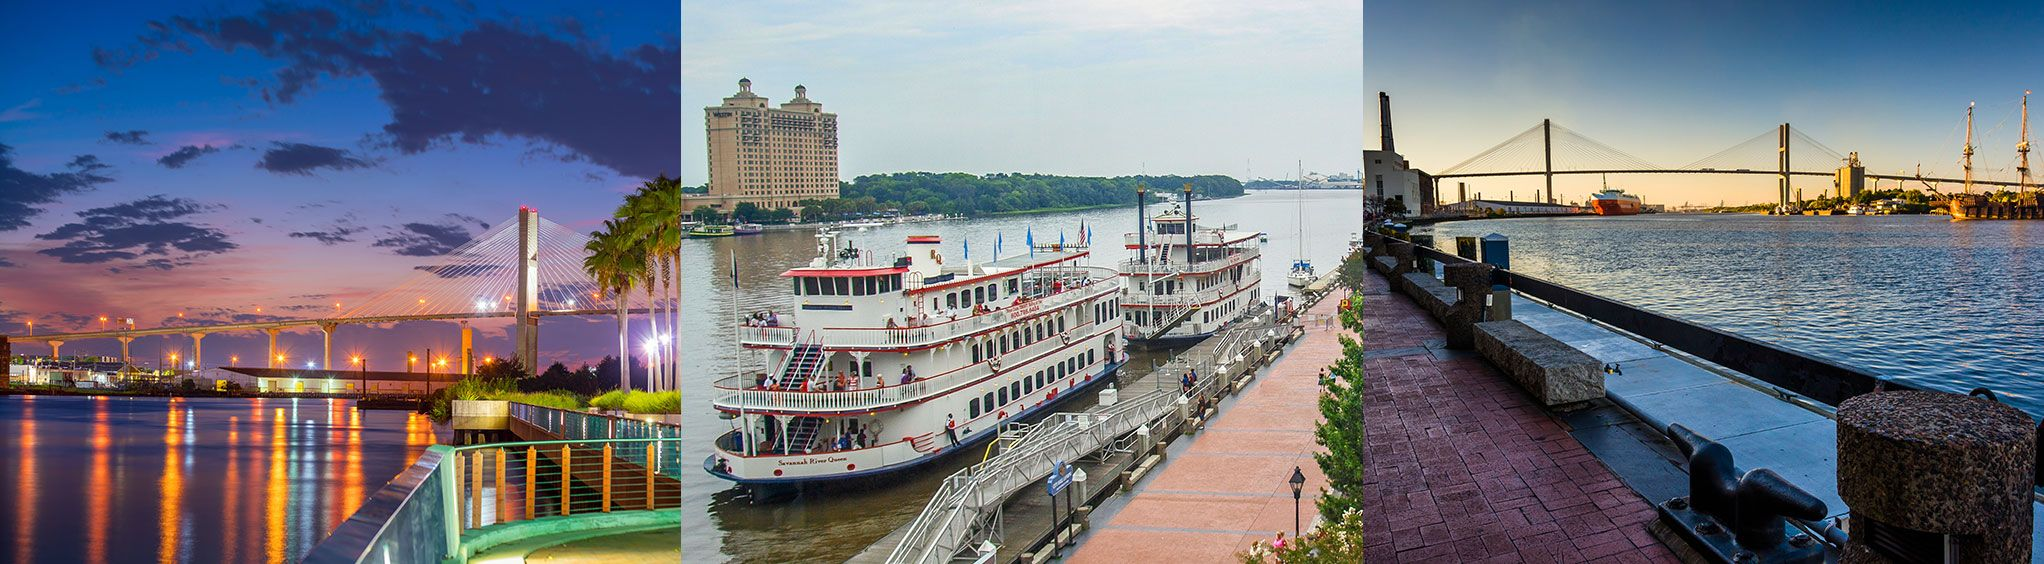 Savannah River in Savannah, GA